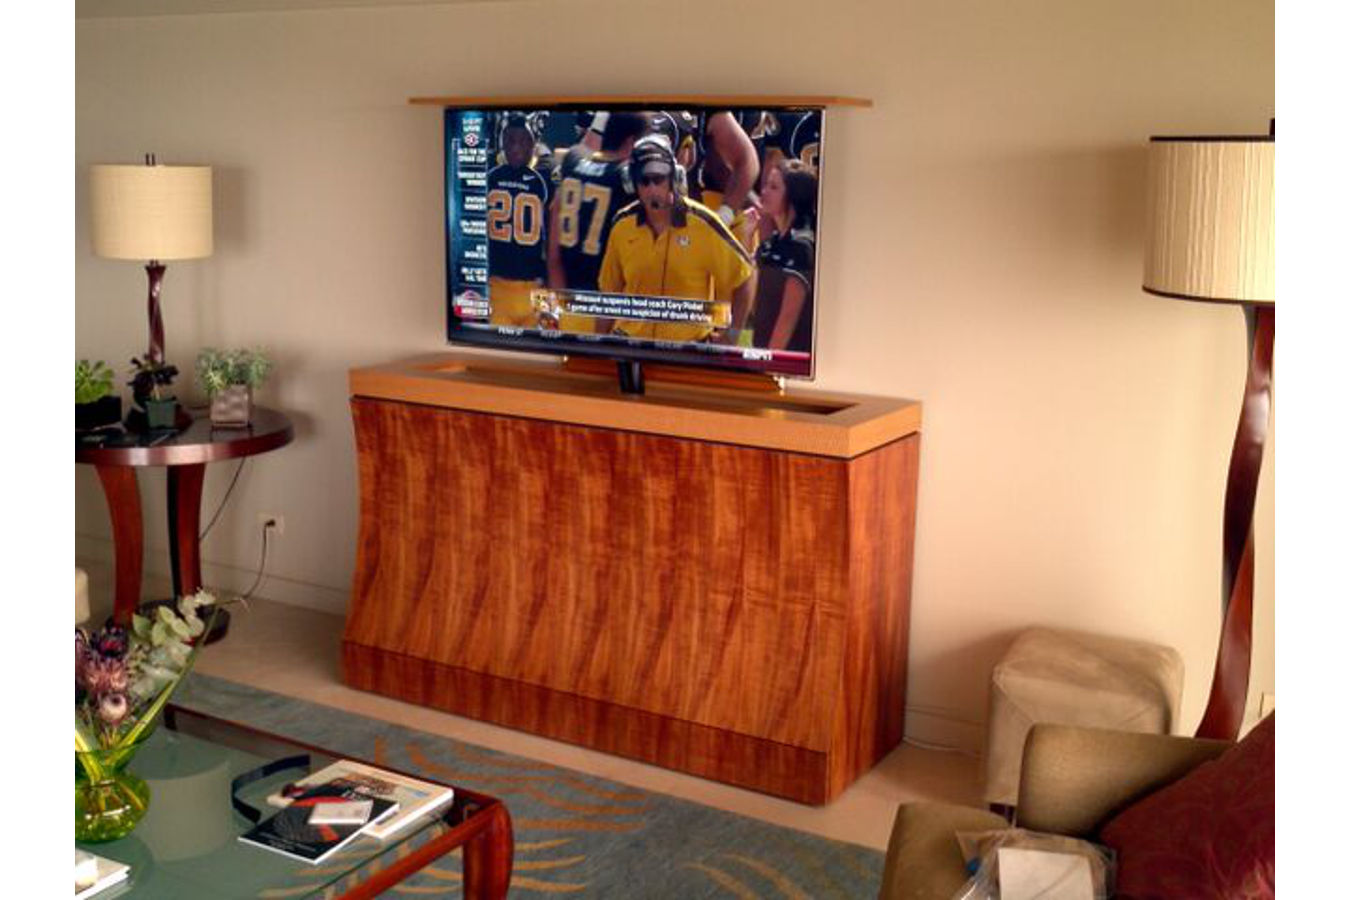 Bayside modern pop up TV lift kit cabinet made out of Koa